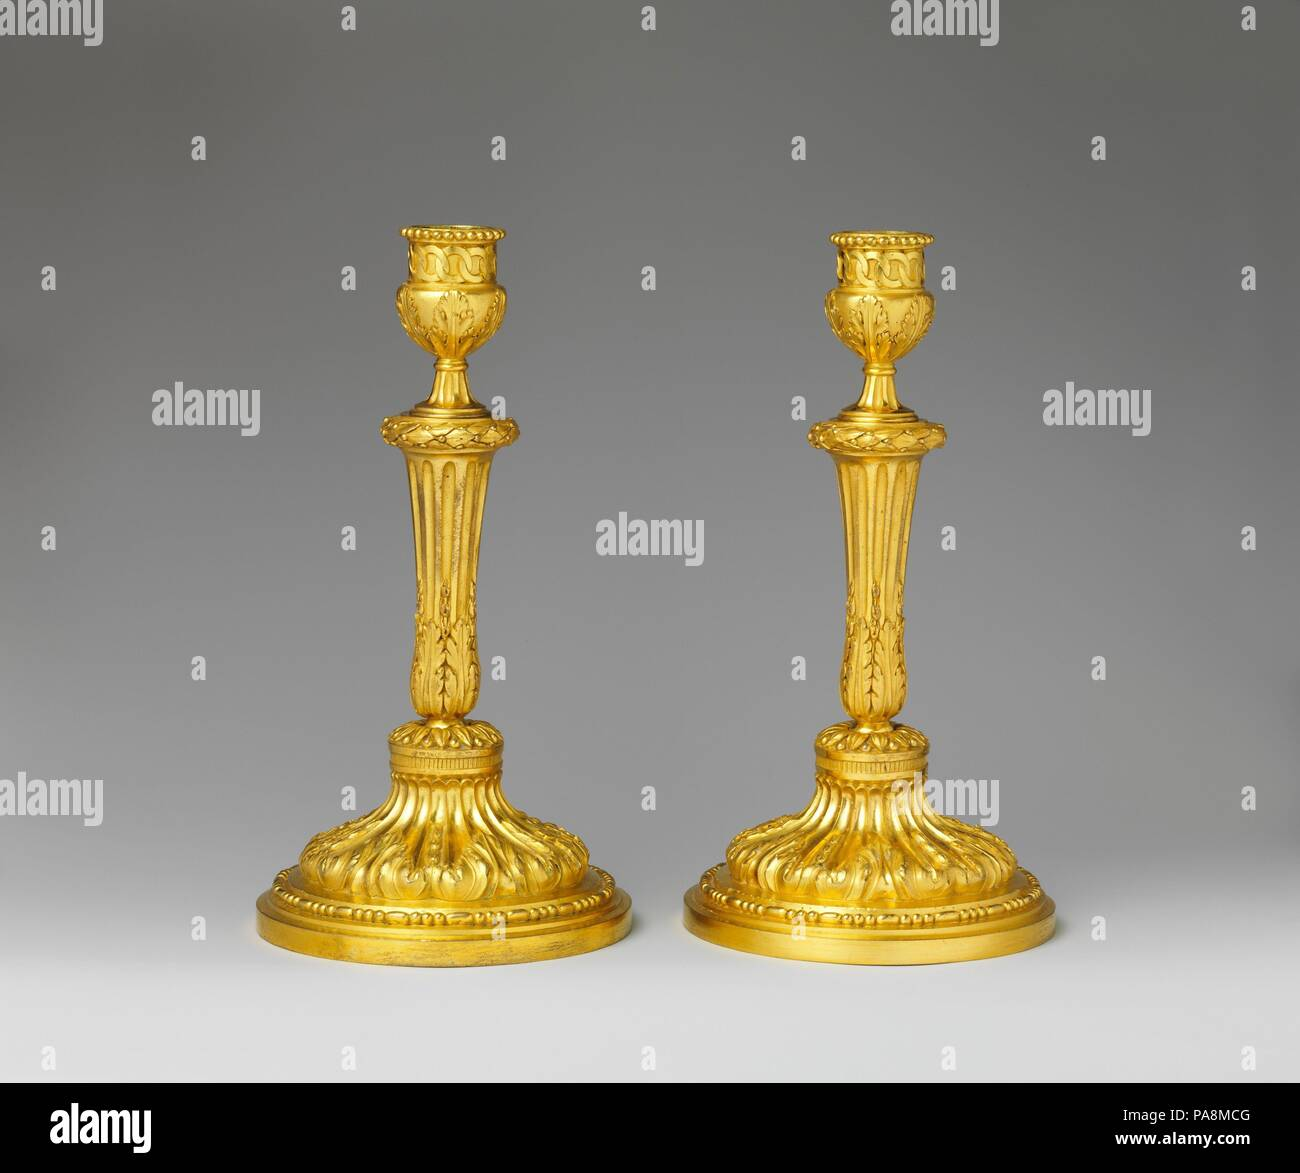 Pair of candlesticks. Culture: French. Dimensions: Overall (confirmed): 10 1/2 x 5 5/8 in. (26.7 x 14.3 cm). Date: ca. 1770-75. Museum: Metropolitan Museum of Art, New York, USA. Stock Photo